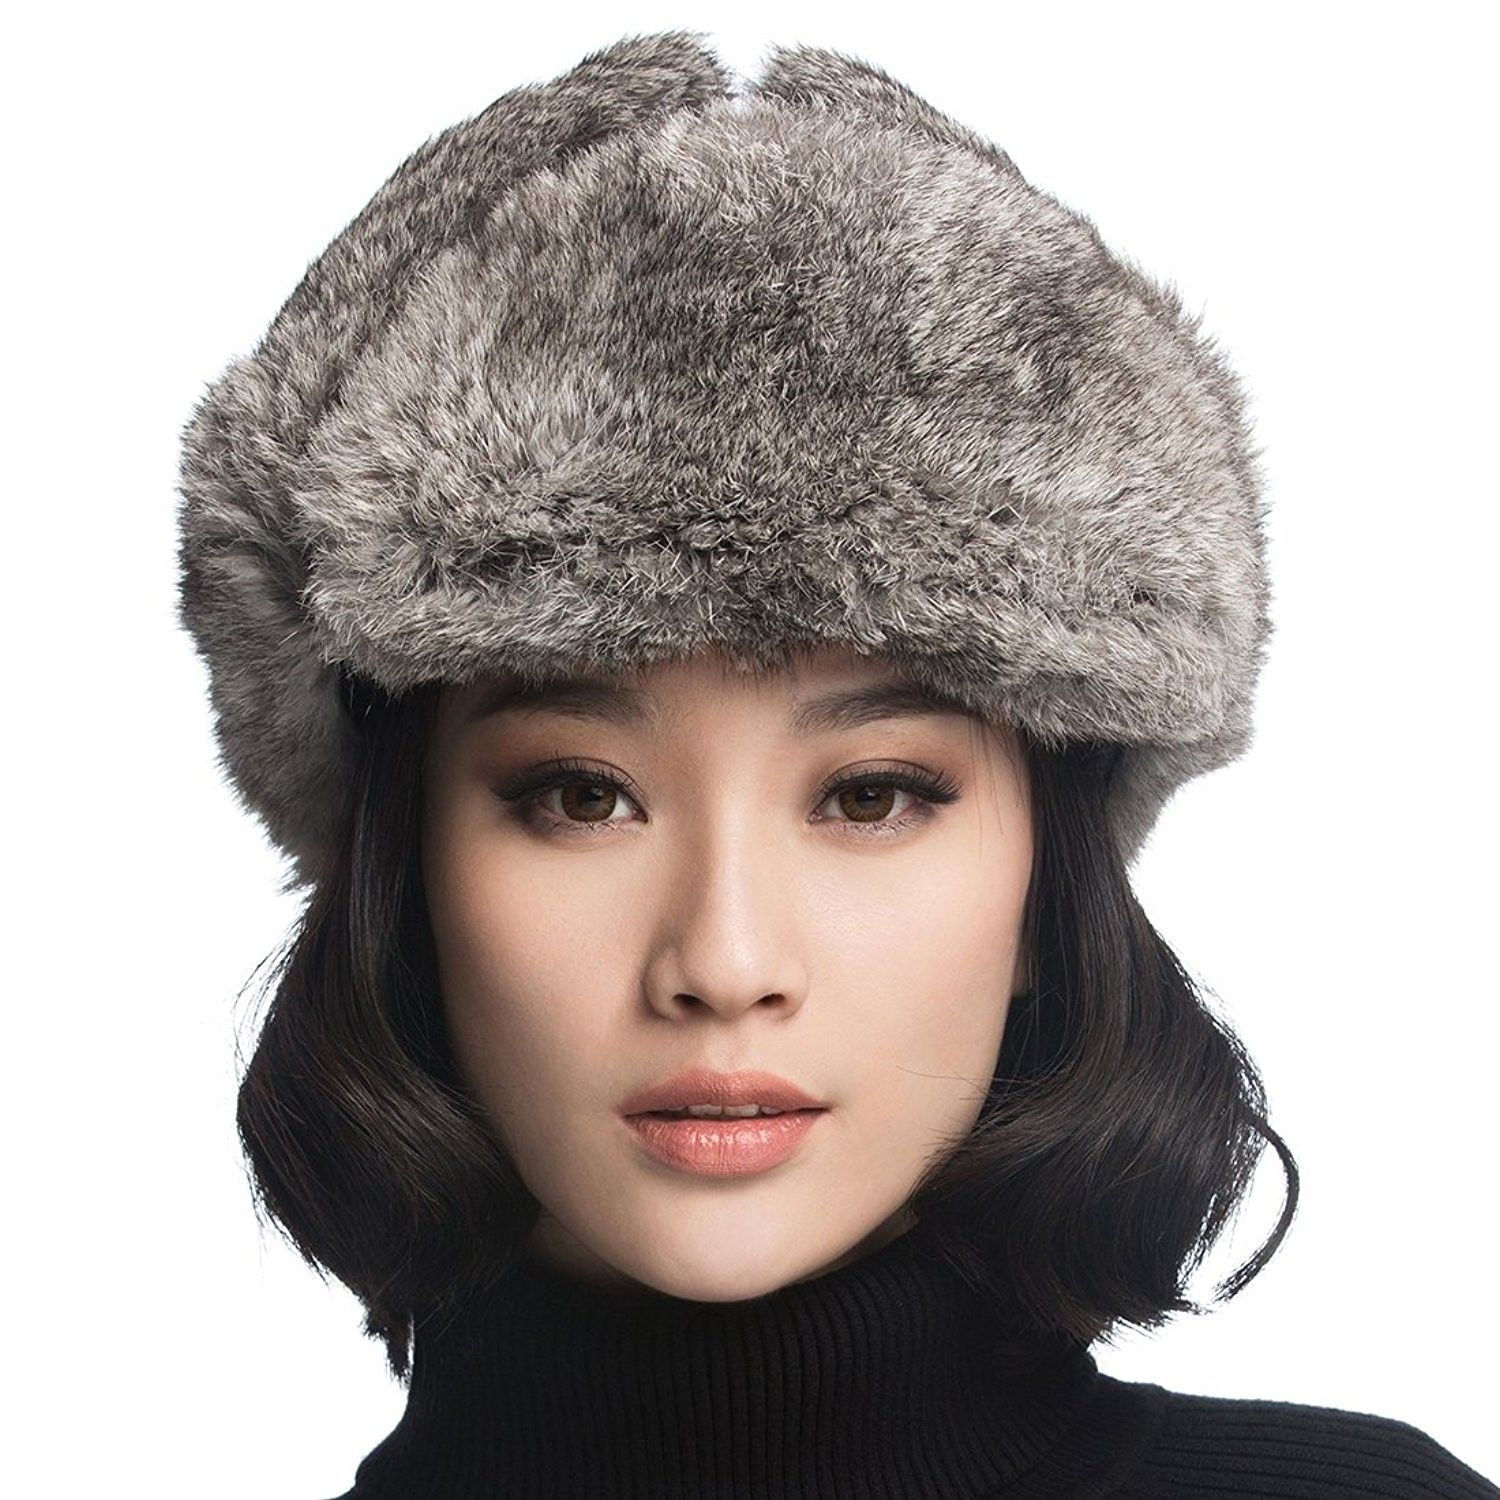 Pin on Fashion Hats & Caps for Women